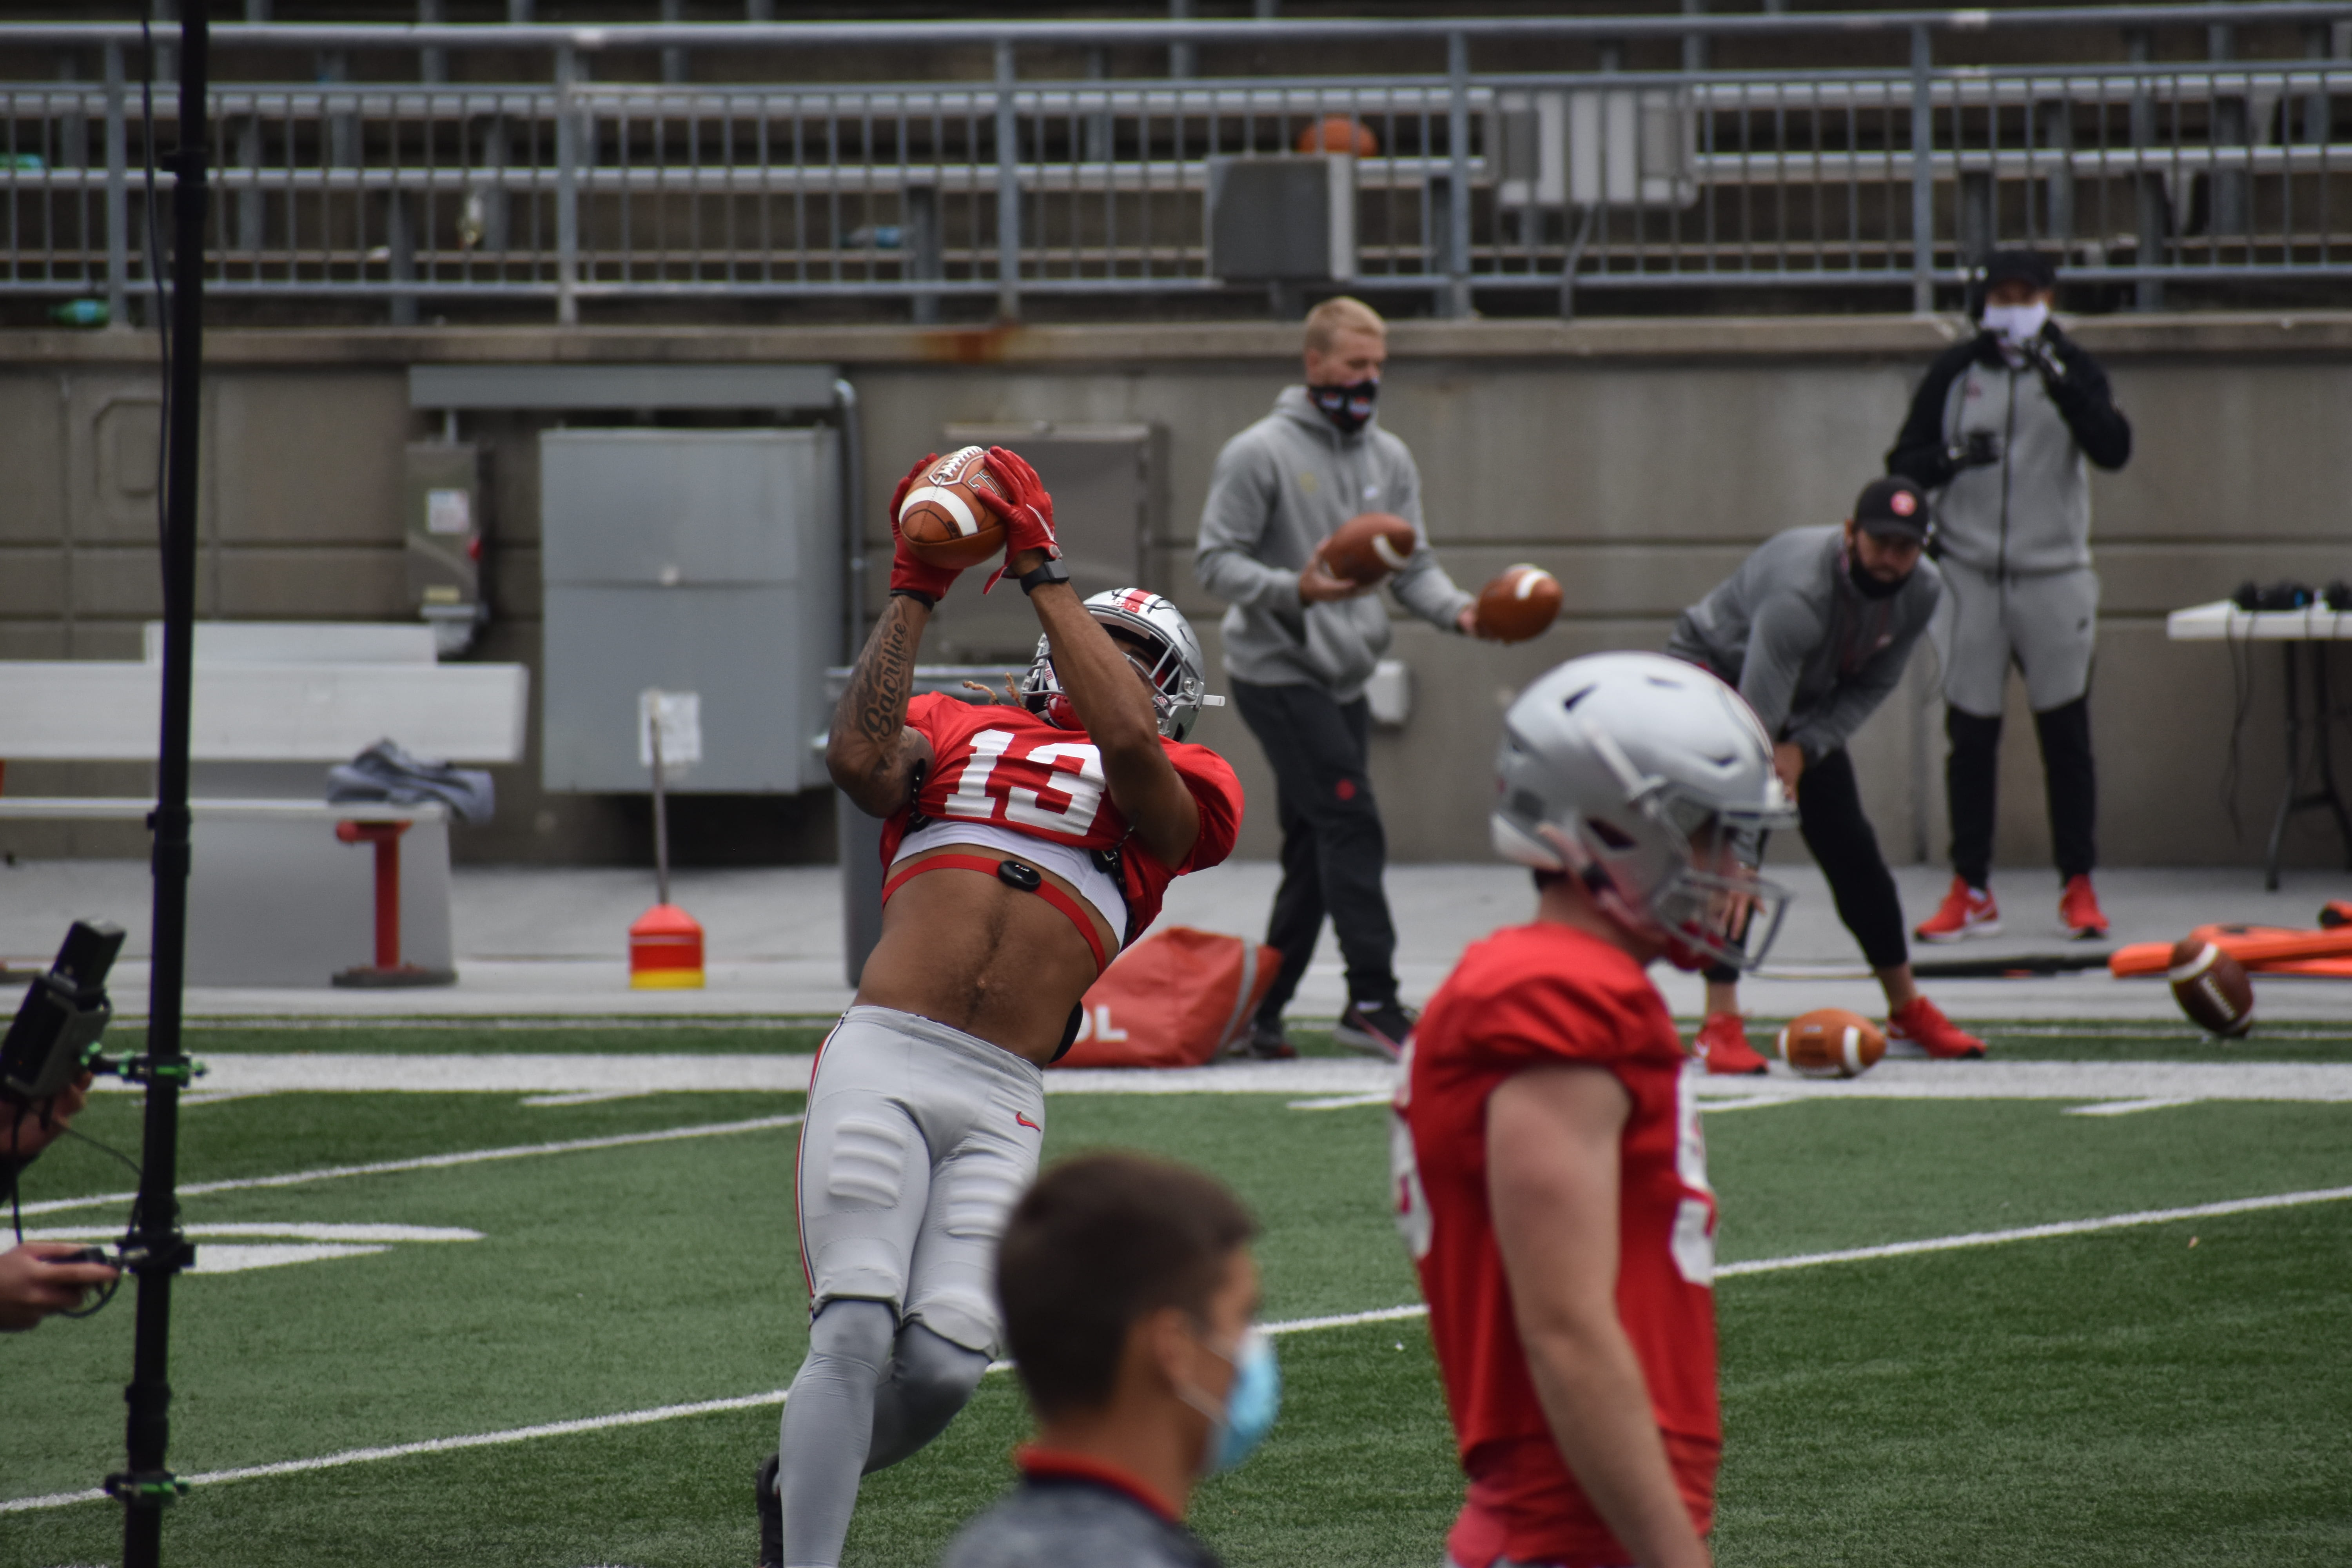 Gee Scott Jr. is falling back to catch a pass